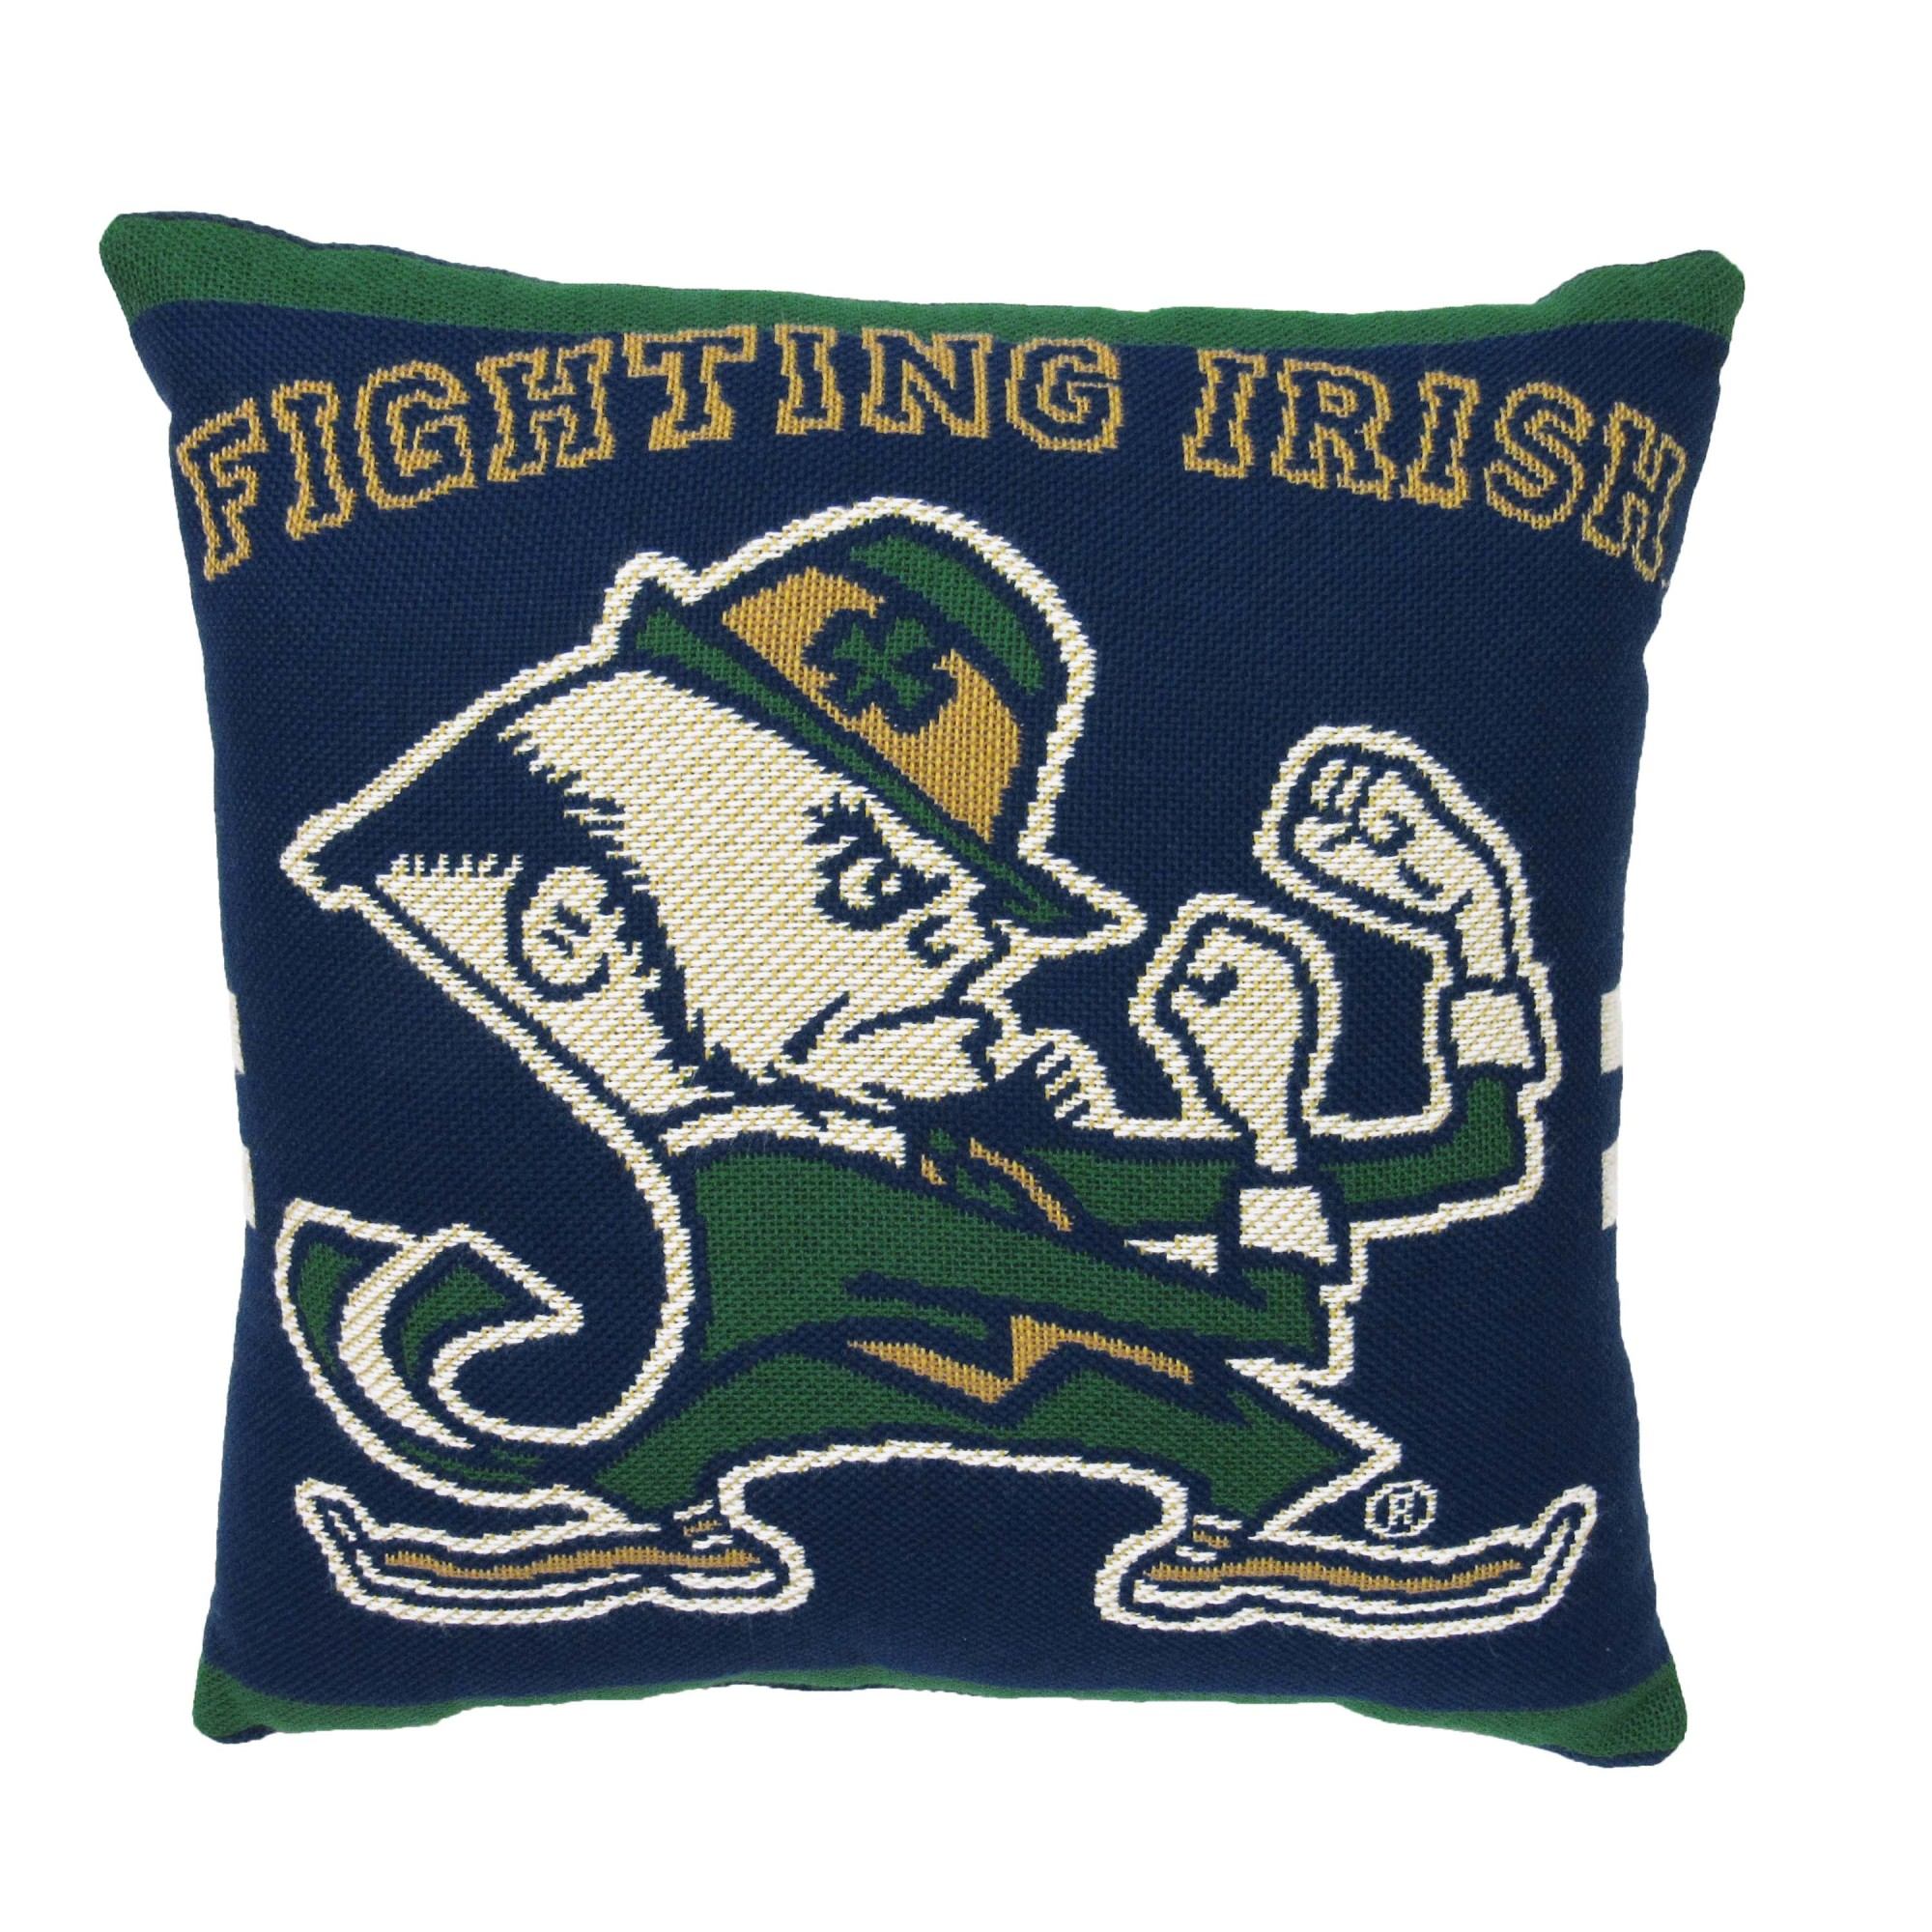 "NCAA University of Notre Dame 20"" Square Decorative Woven Pillow by The Northwest Company"